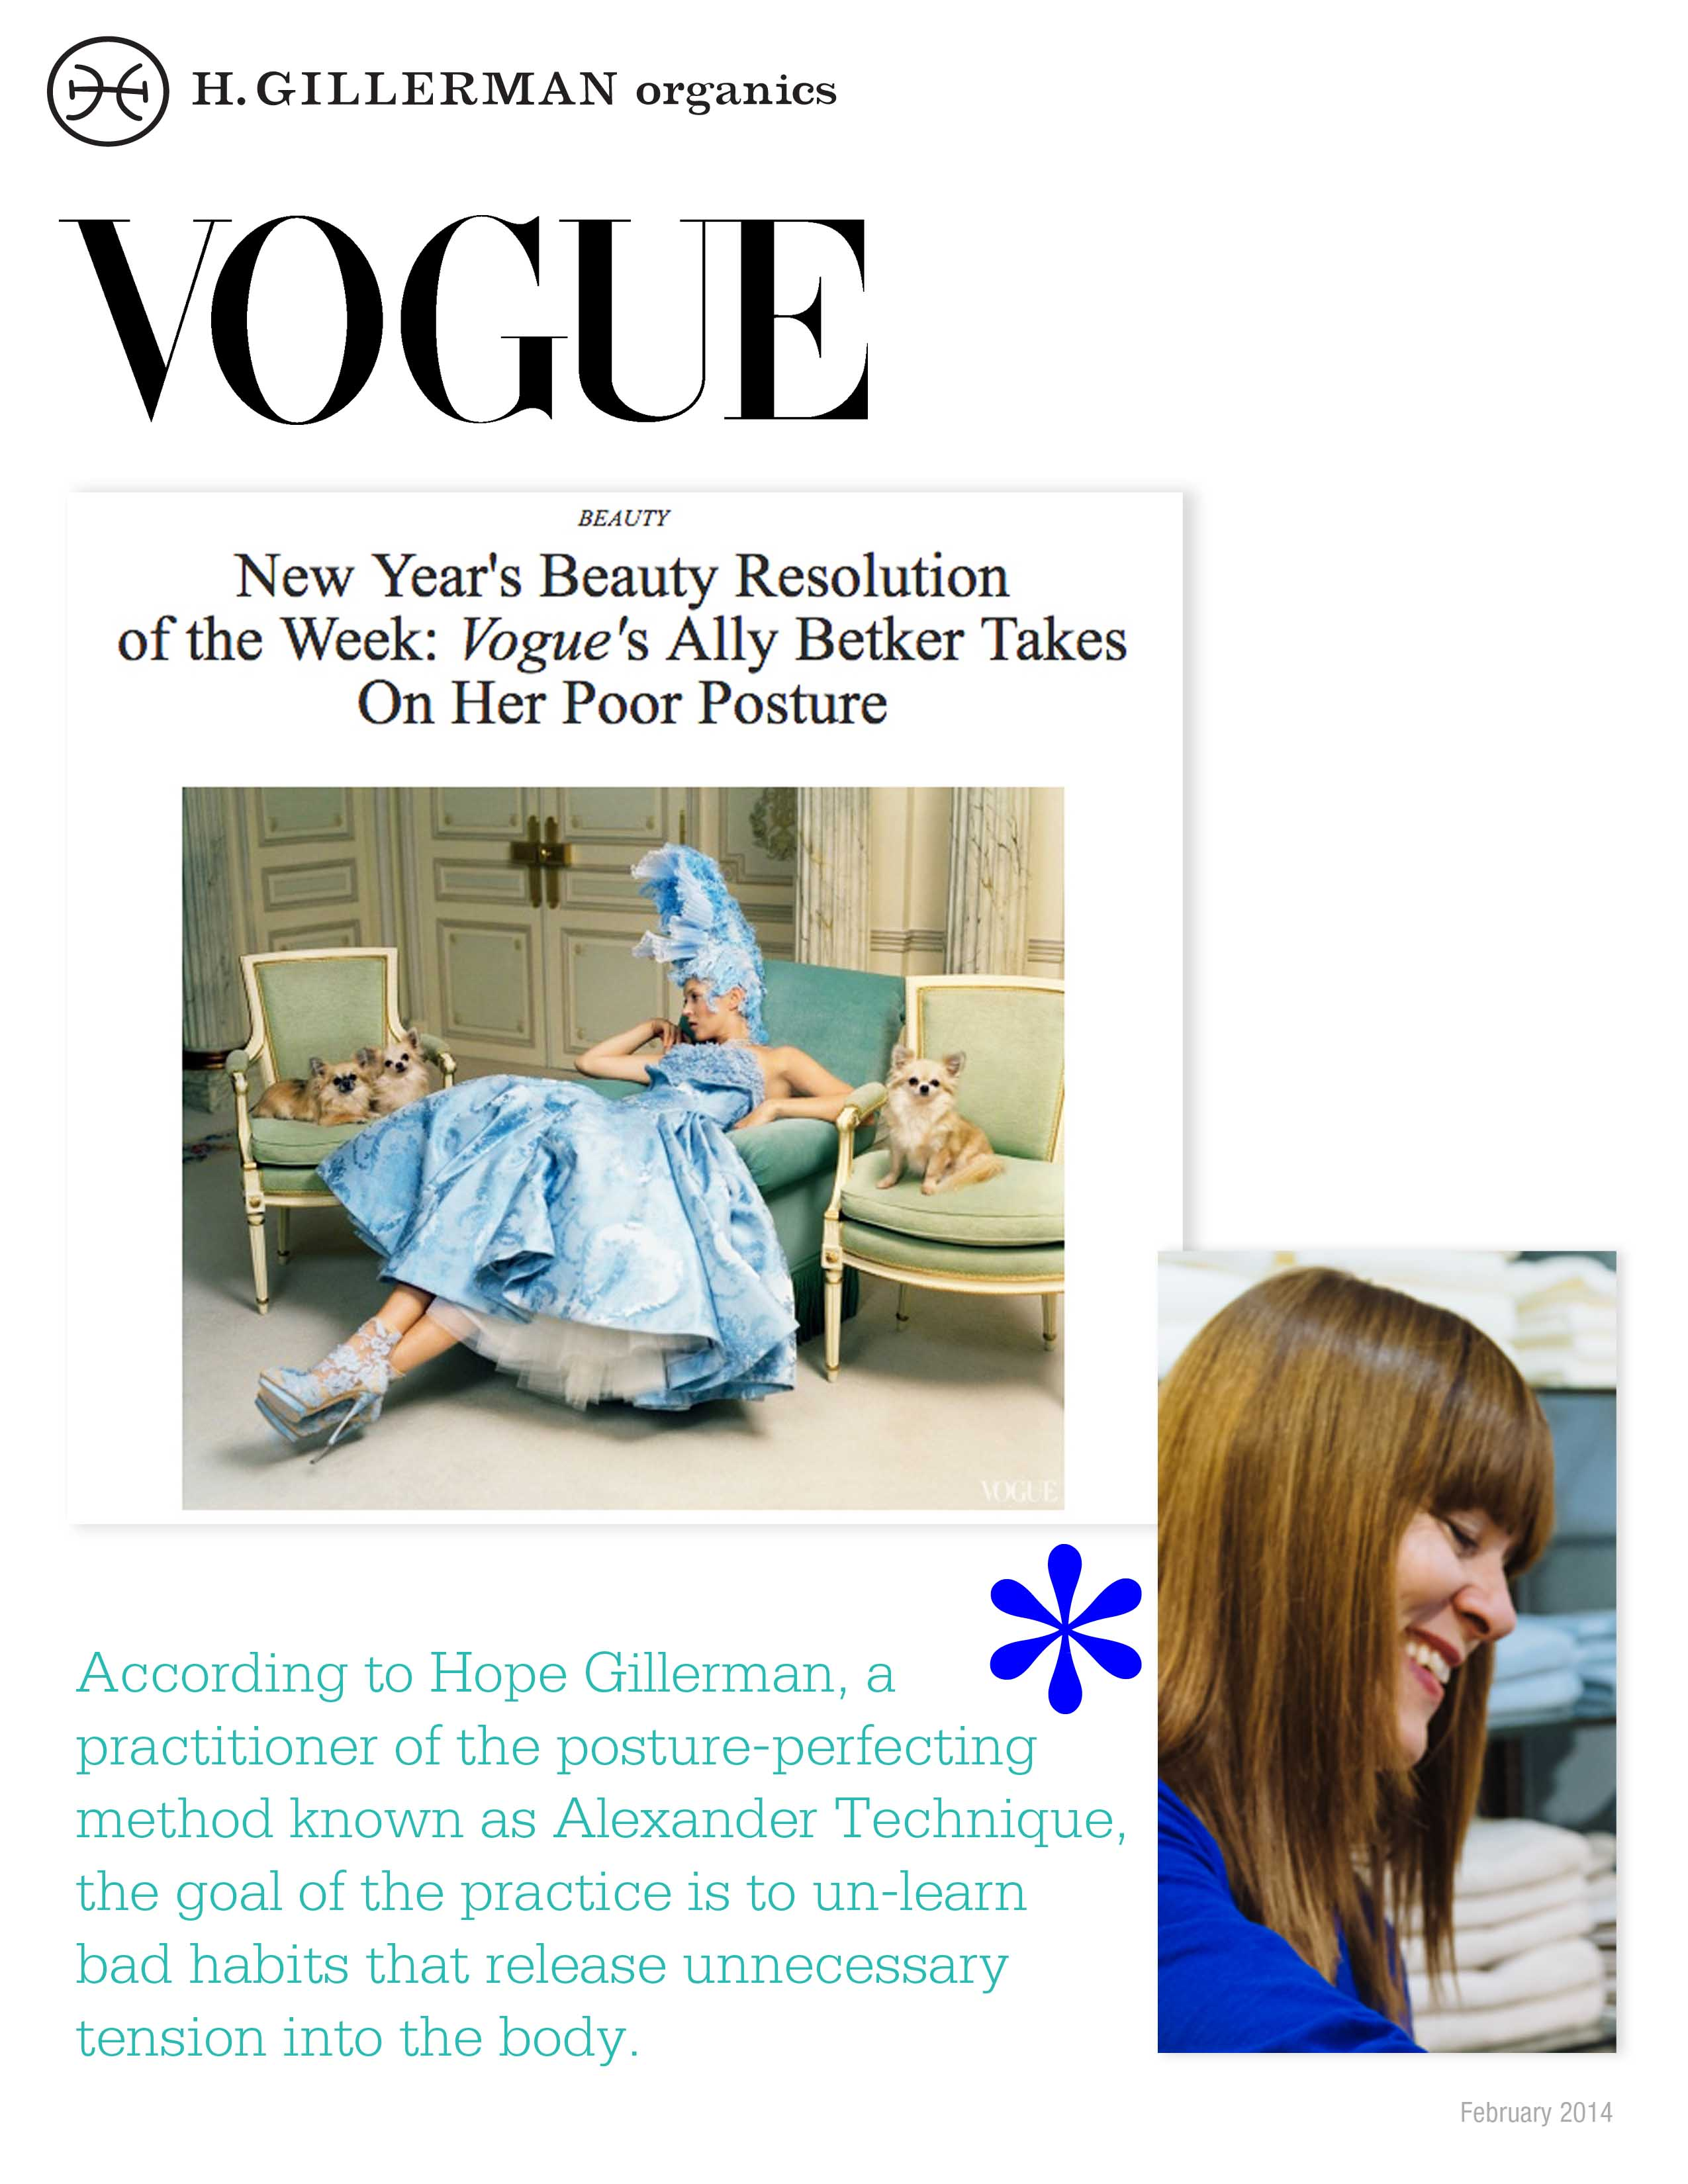 VOGUE H Gillerman Organics